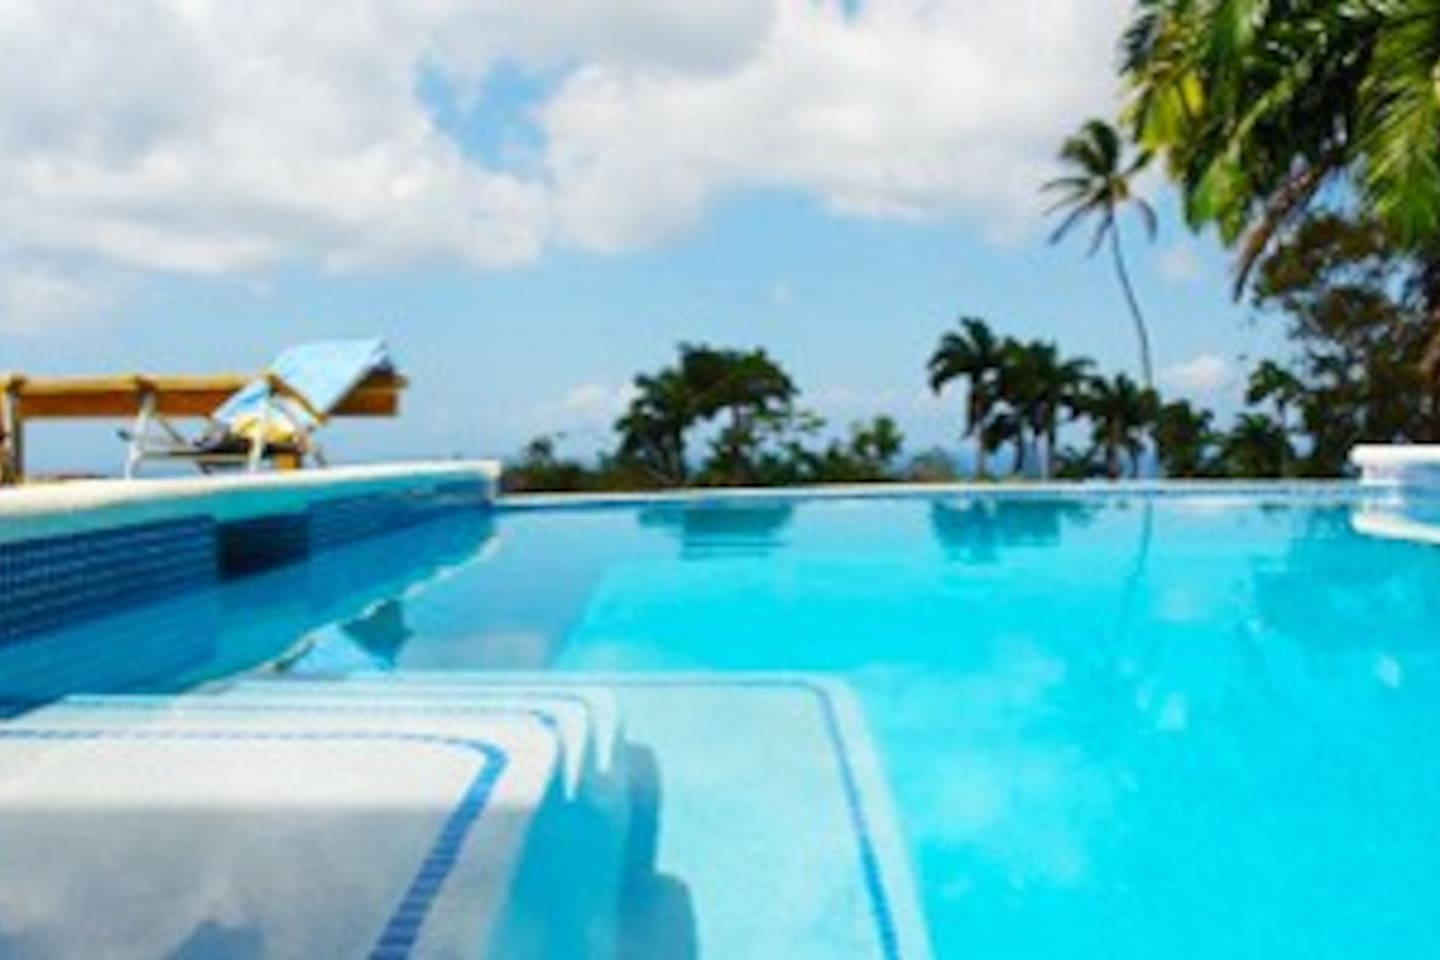 life of pi swimming pool top tobago vacation rentals vacation  top tobago vacation rentals vacation homes condo rentals top 20 tobago vacation rentals vacation homes condo